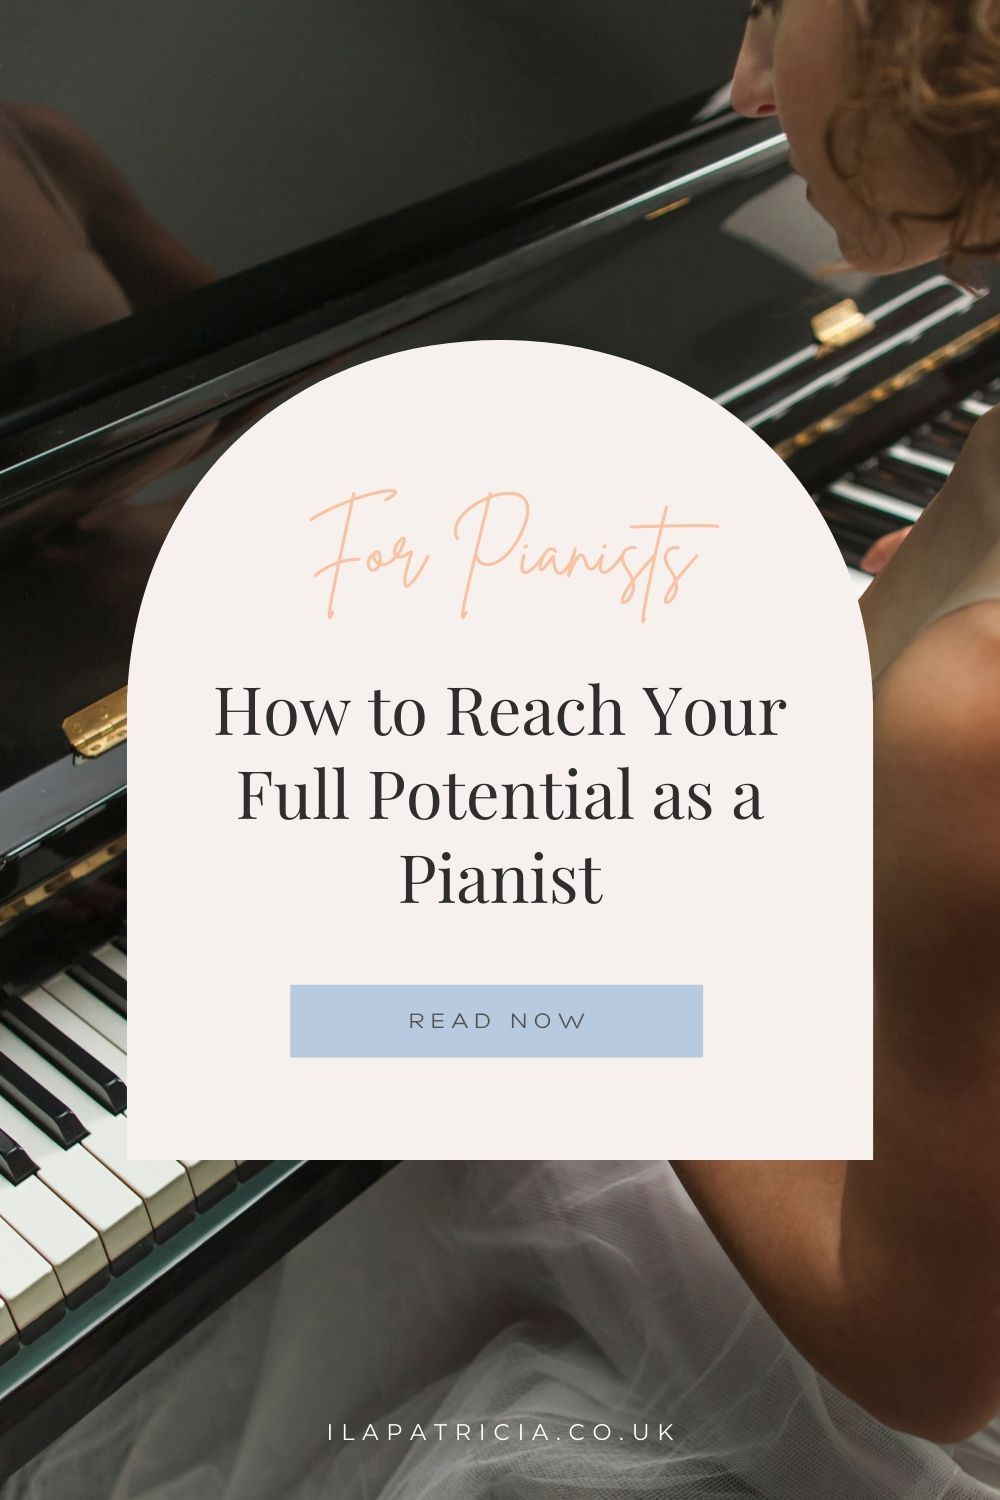 How to Reach Your Full Potential as a Pianist in 4 Steps